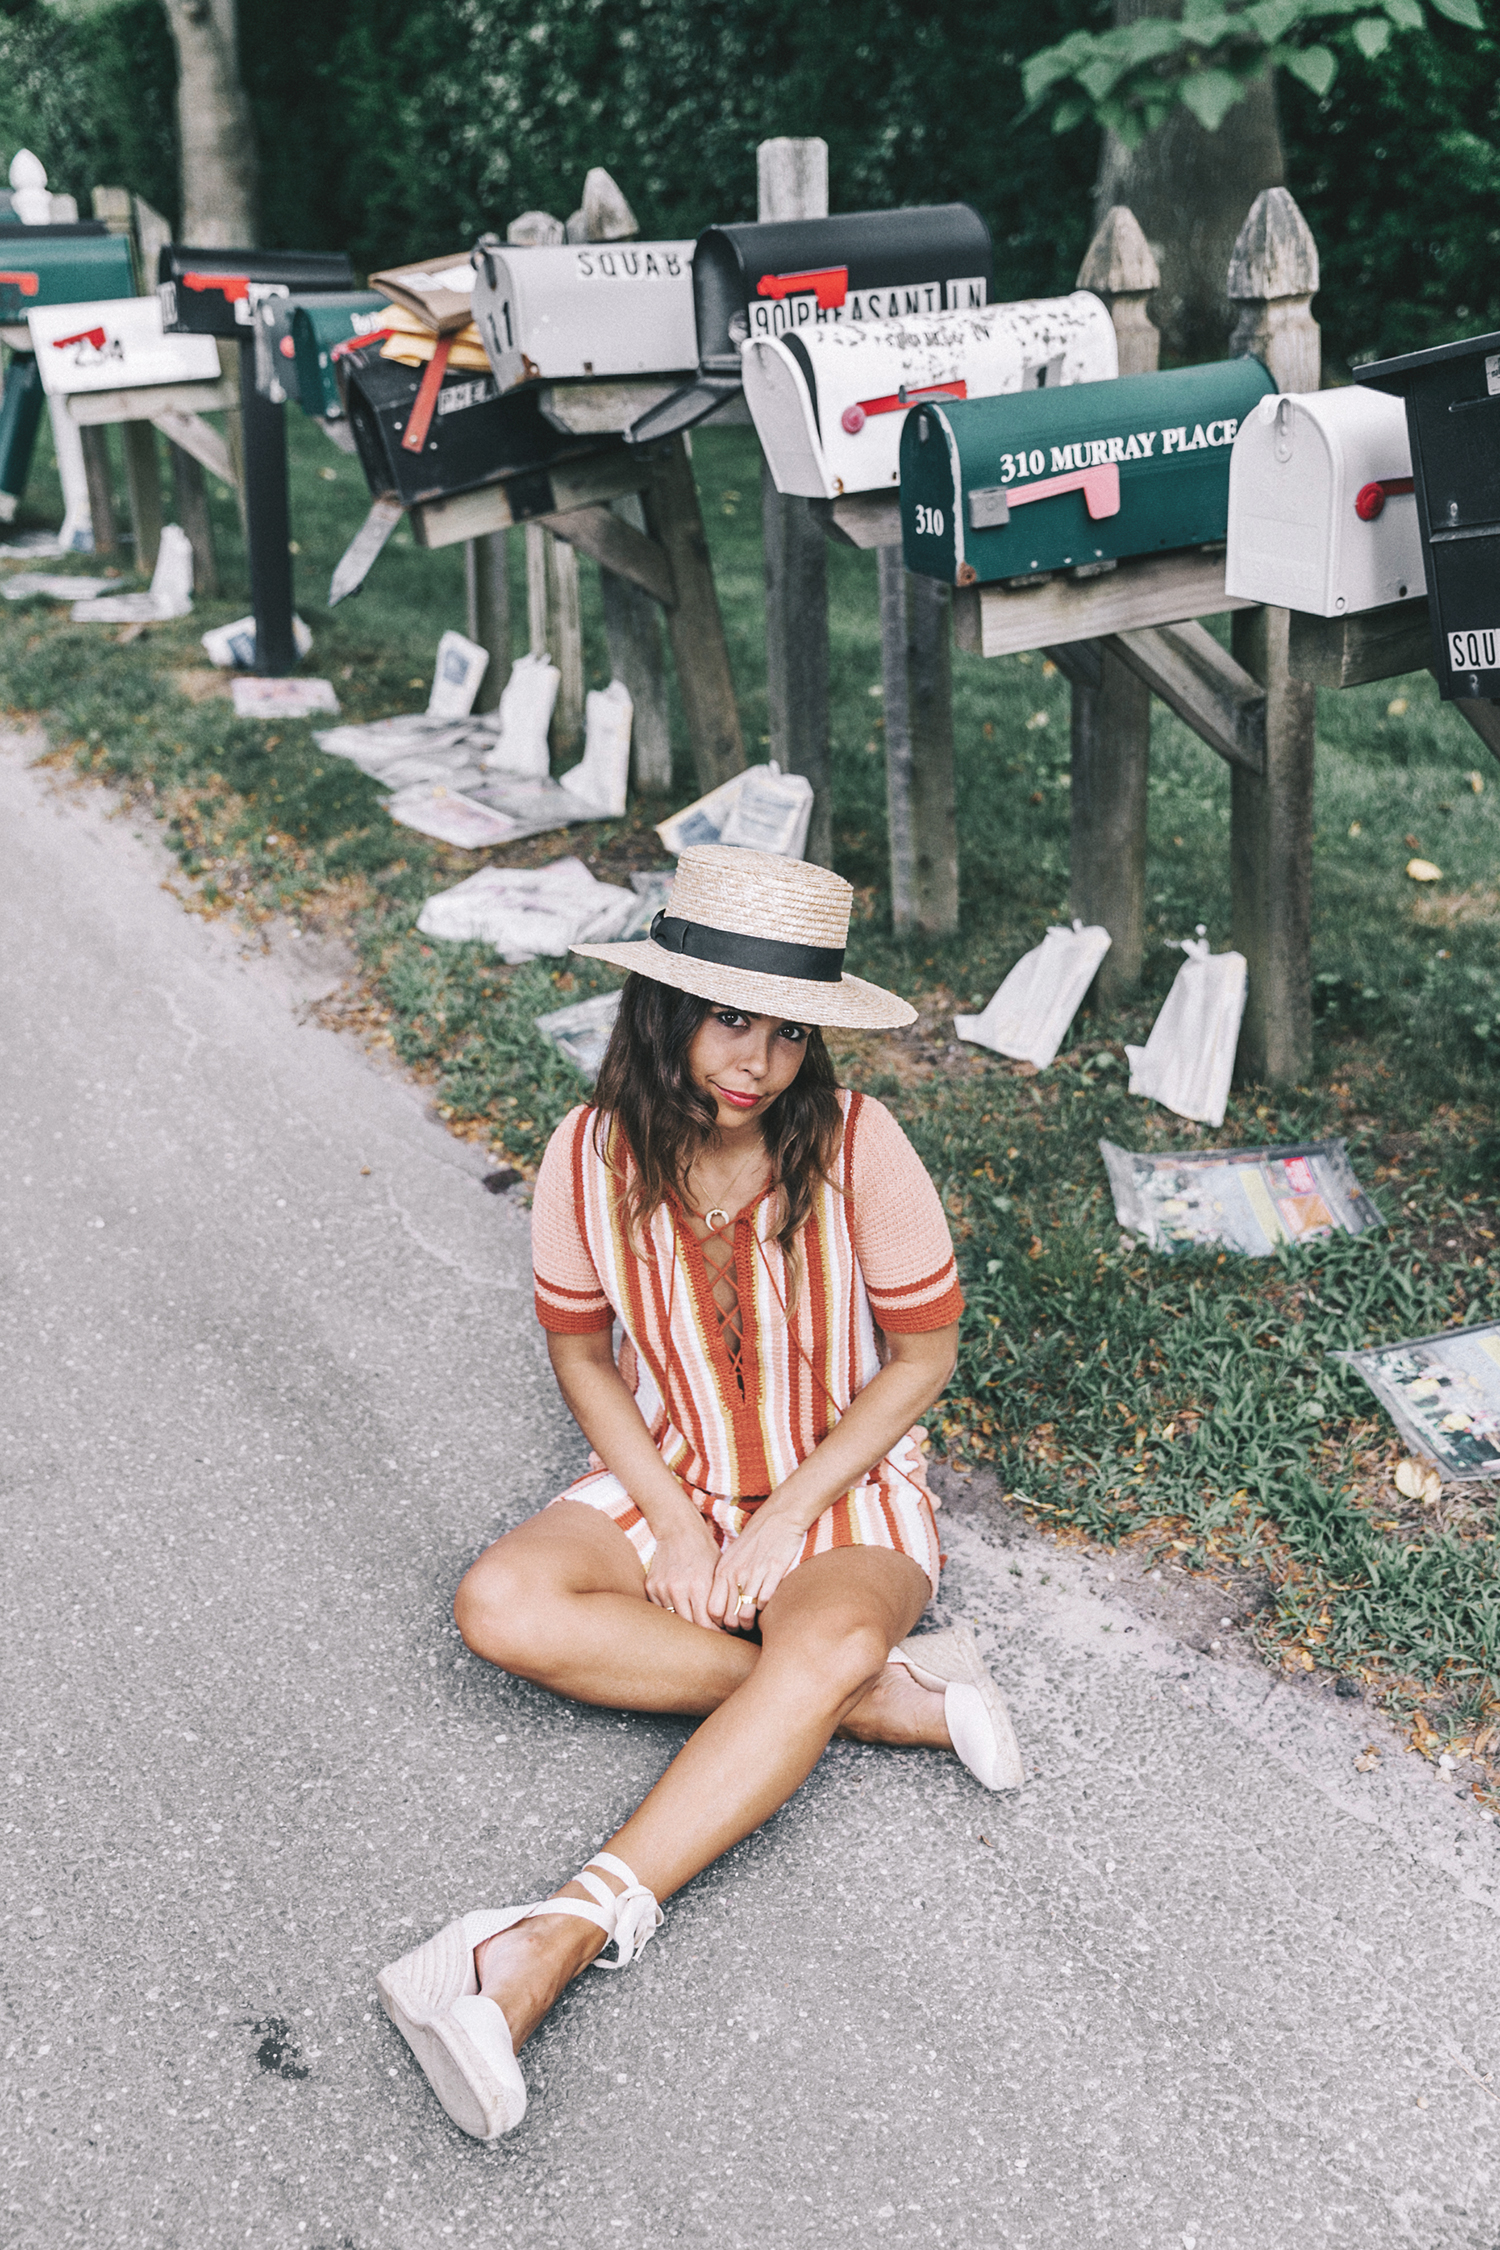 Revolve_in_The_Hamptons-Revolve_Clothing-Collage_Vintage-Free_People_Lace_Dress-Knitted_Dress-Soludos_Espadrilles-Canotier-Hat-Outfit-51